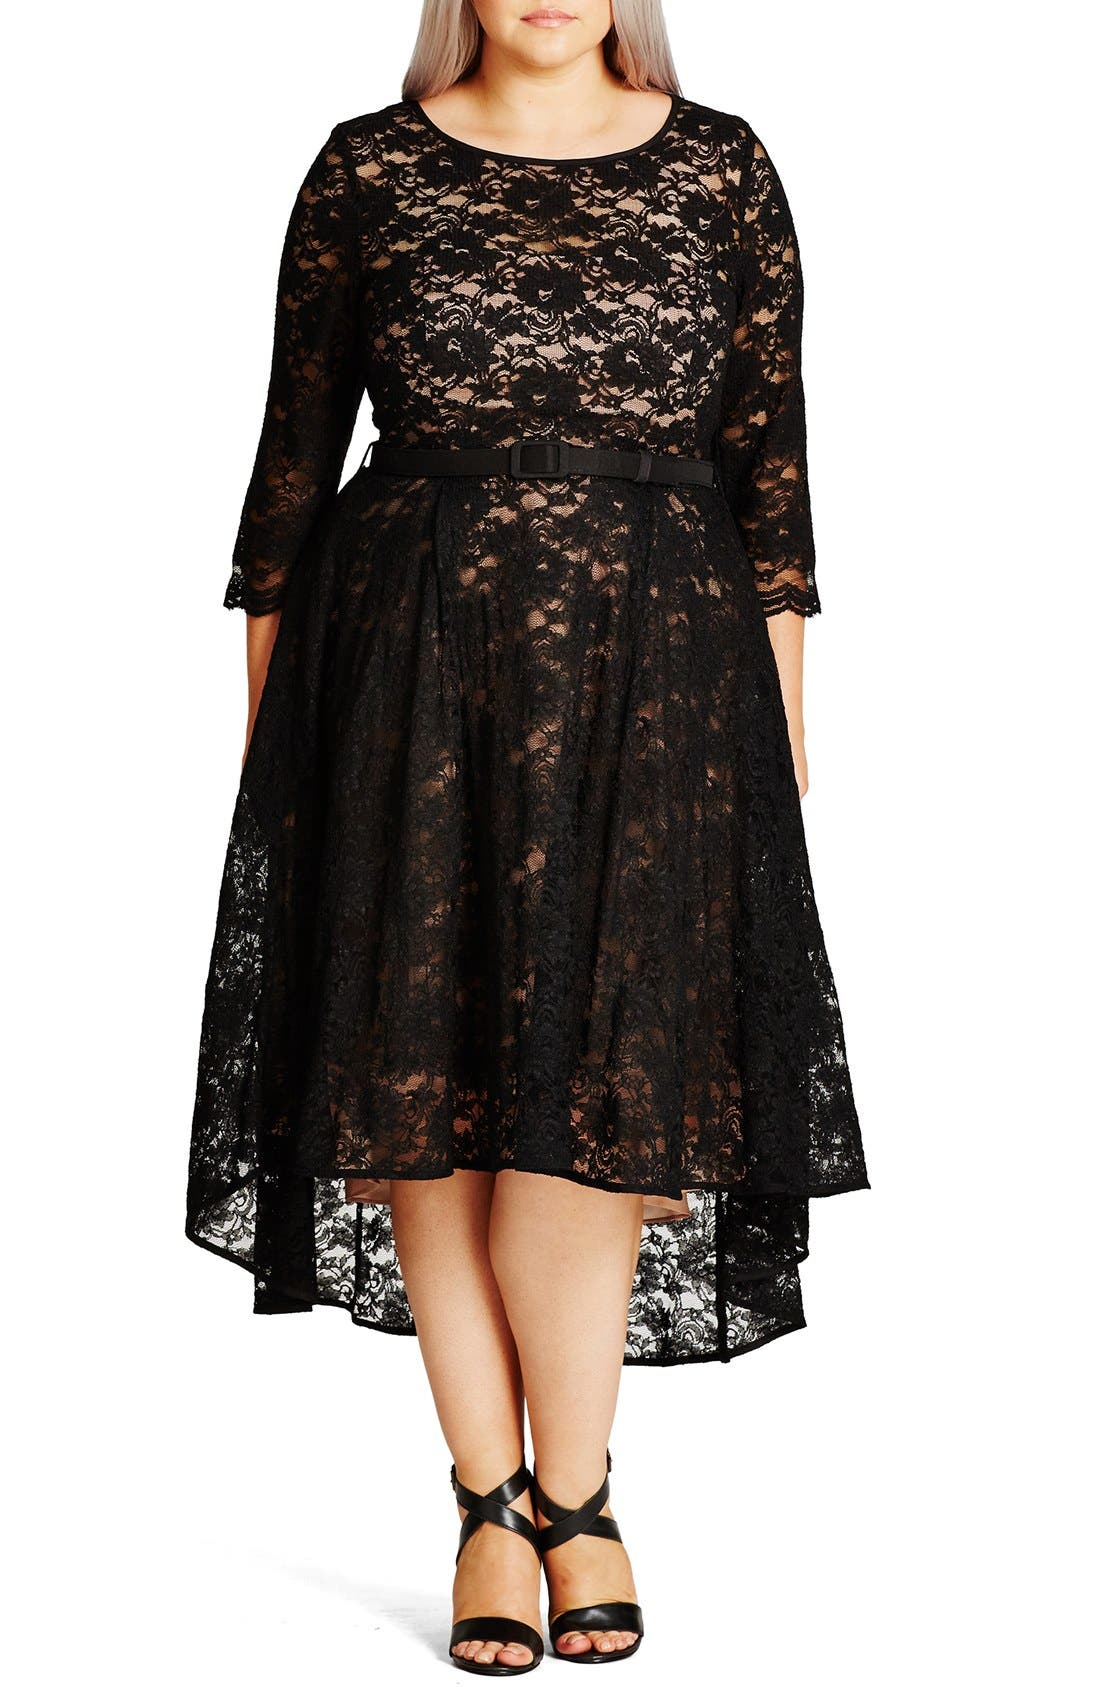 Main Image - City Chic 'Lace Lover' High/Low Midi Dress (Plus Size)